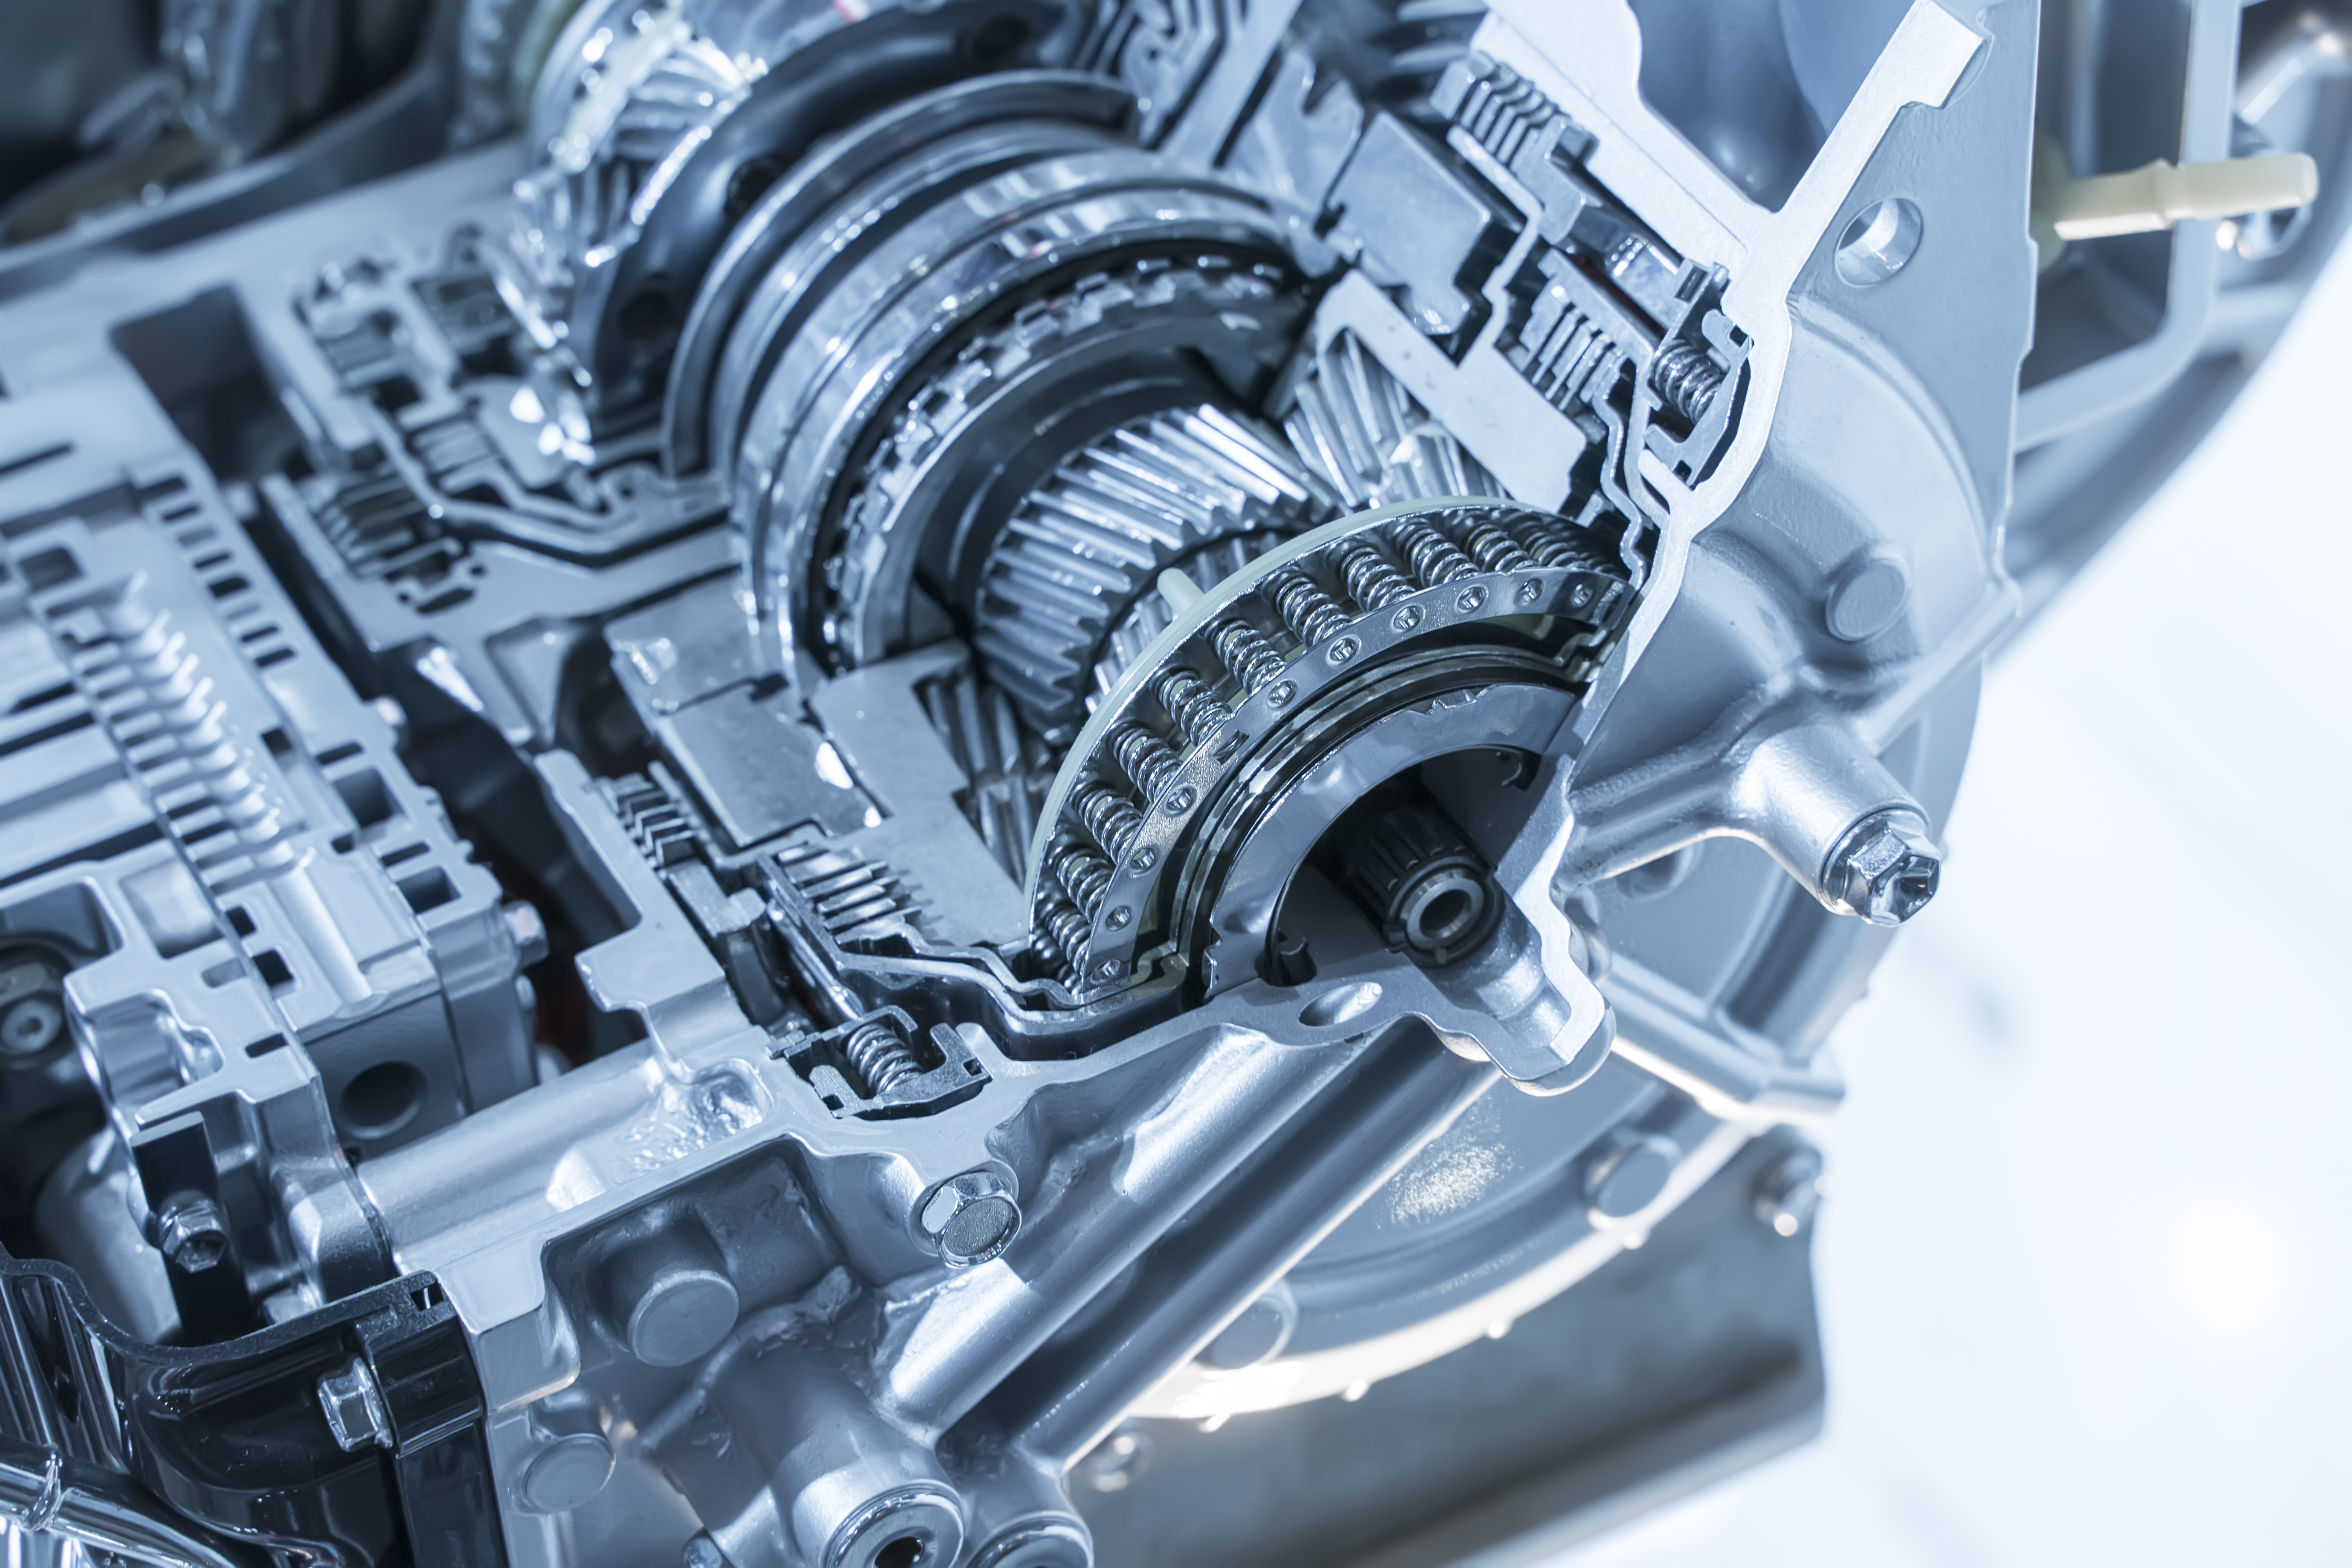 Most common transmission issues